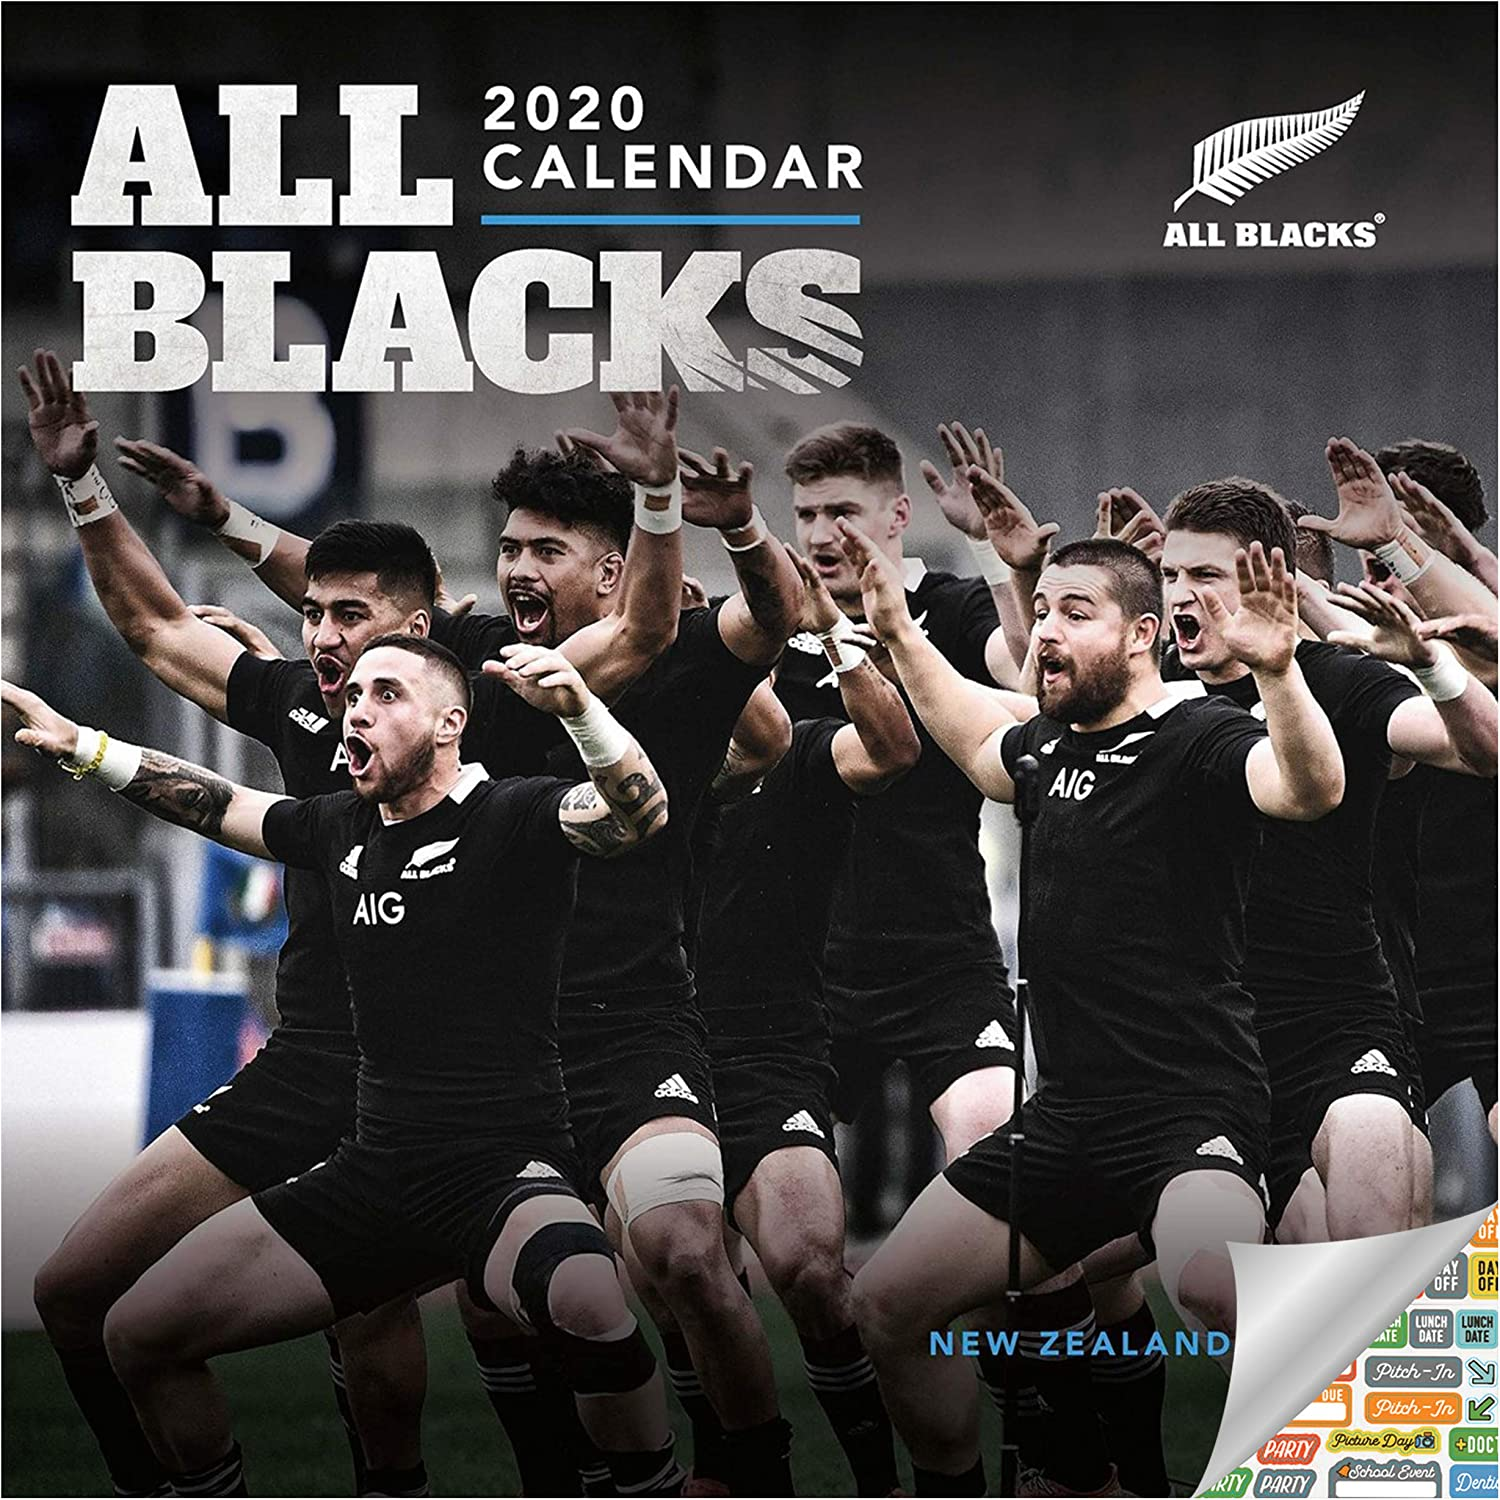 Amazon Com The New Zealand National Rugby Union Team The All Blacks Calendar 2020 All Blacks Wall Calendar Bundle With Over 100 Calendar Stickers Office Products